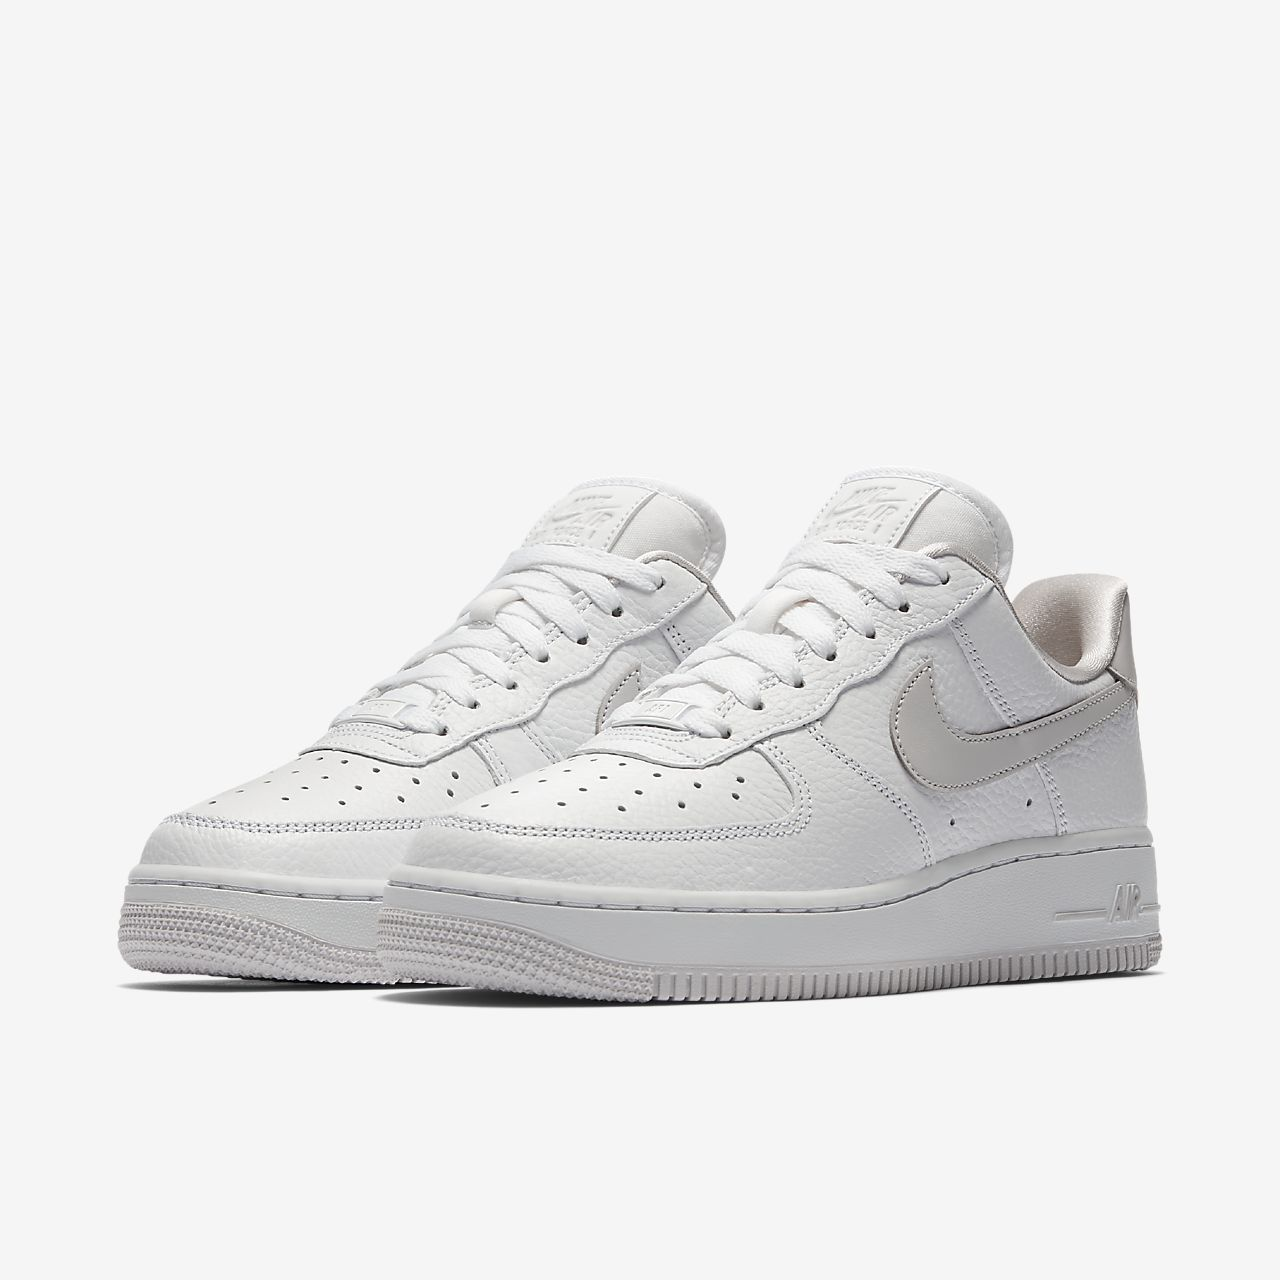 Air Casual Force Blanches Fille 1 Nike H8apdaidwz Chaussures